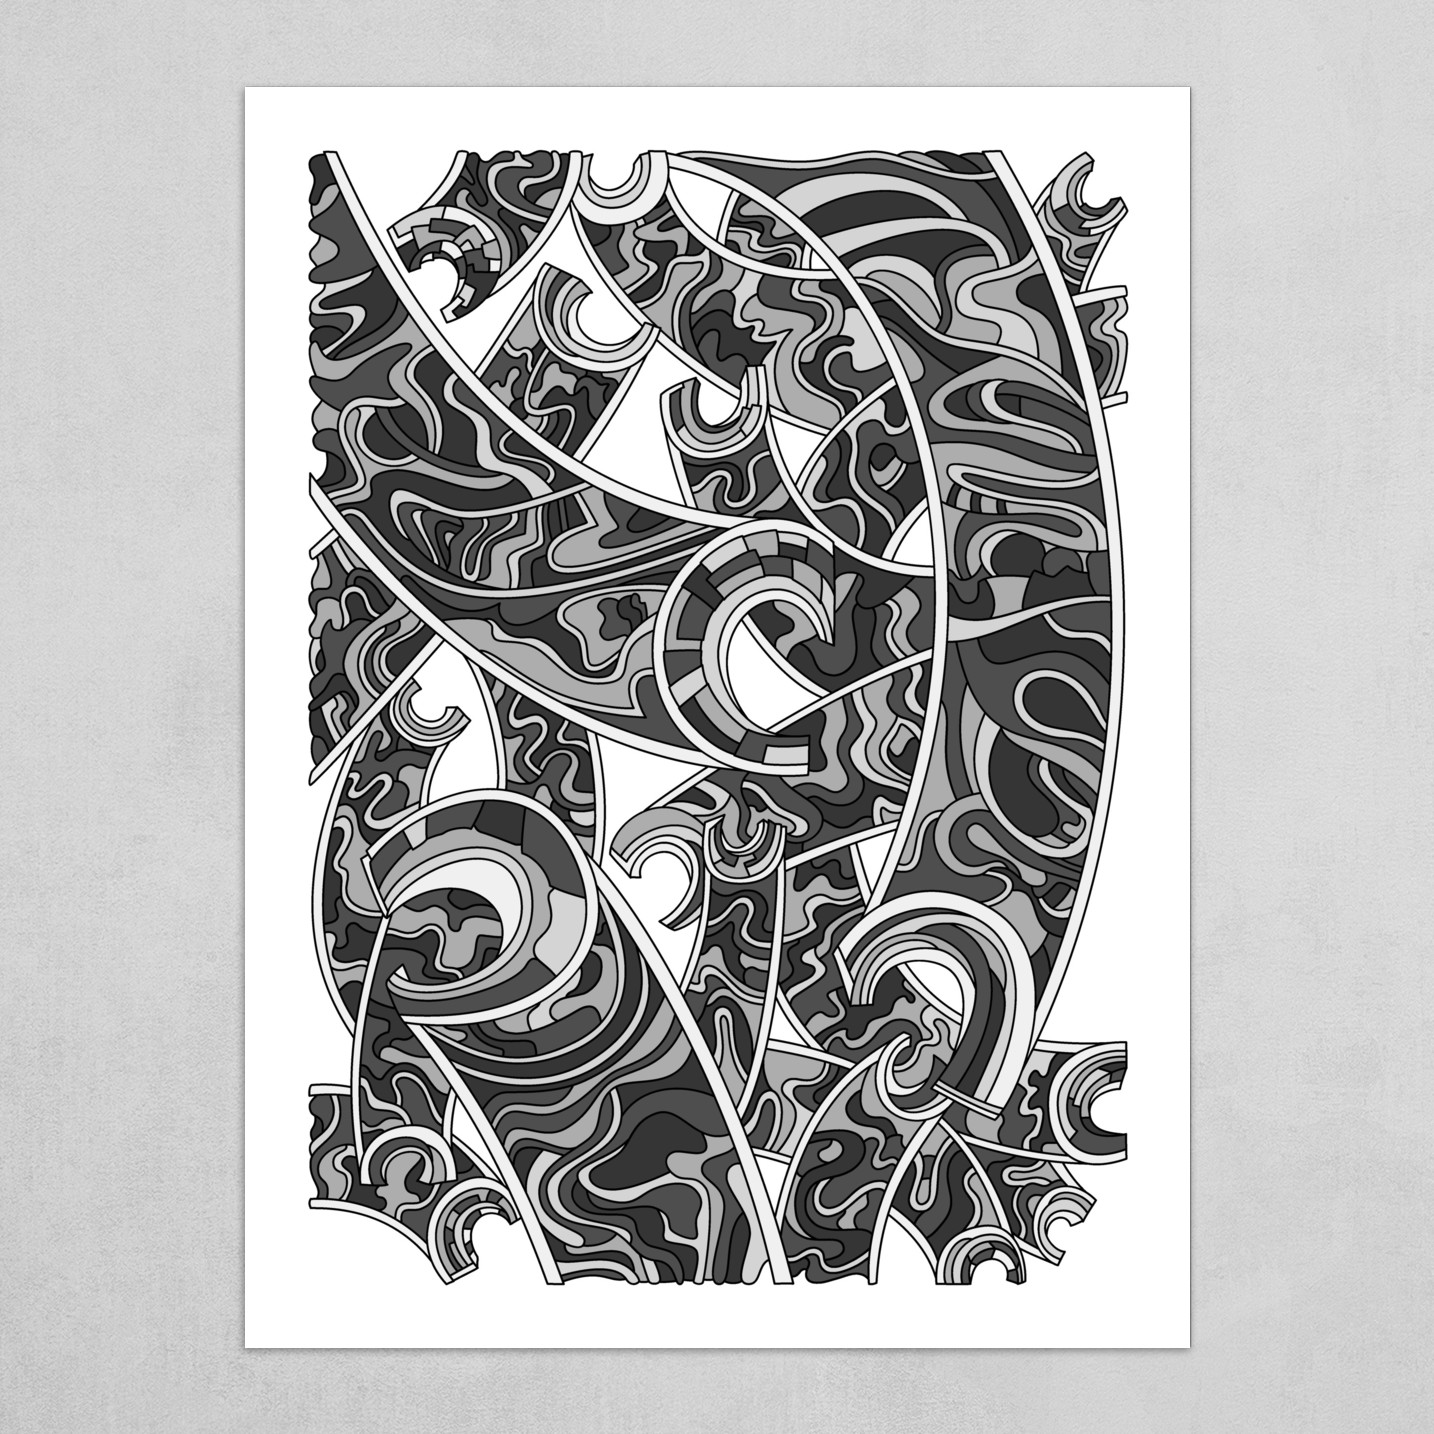 Wandering Abstract Line Art 32: Grayscale